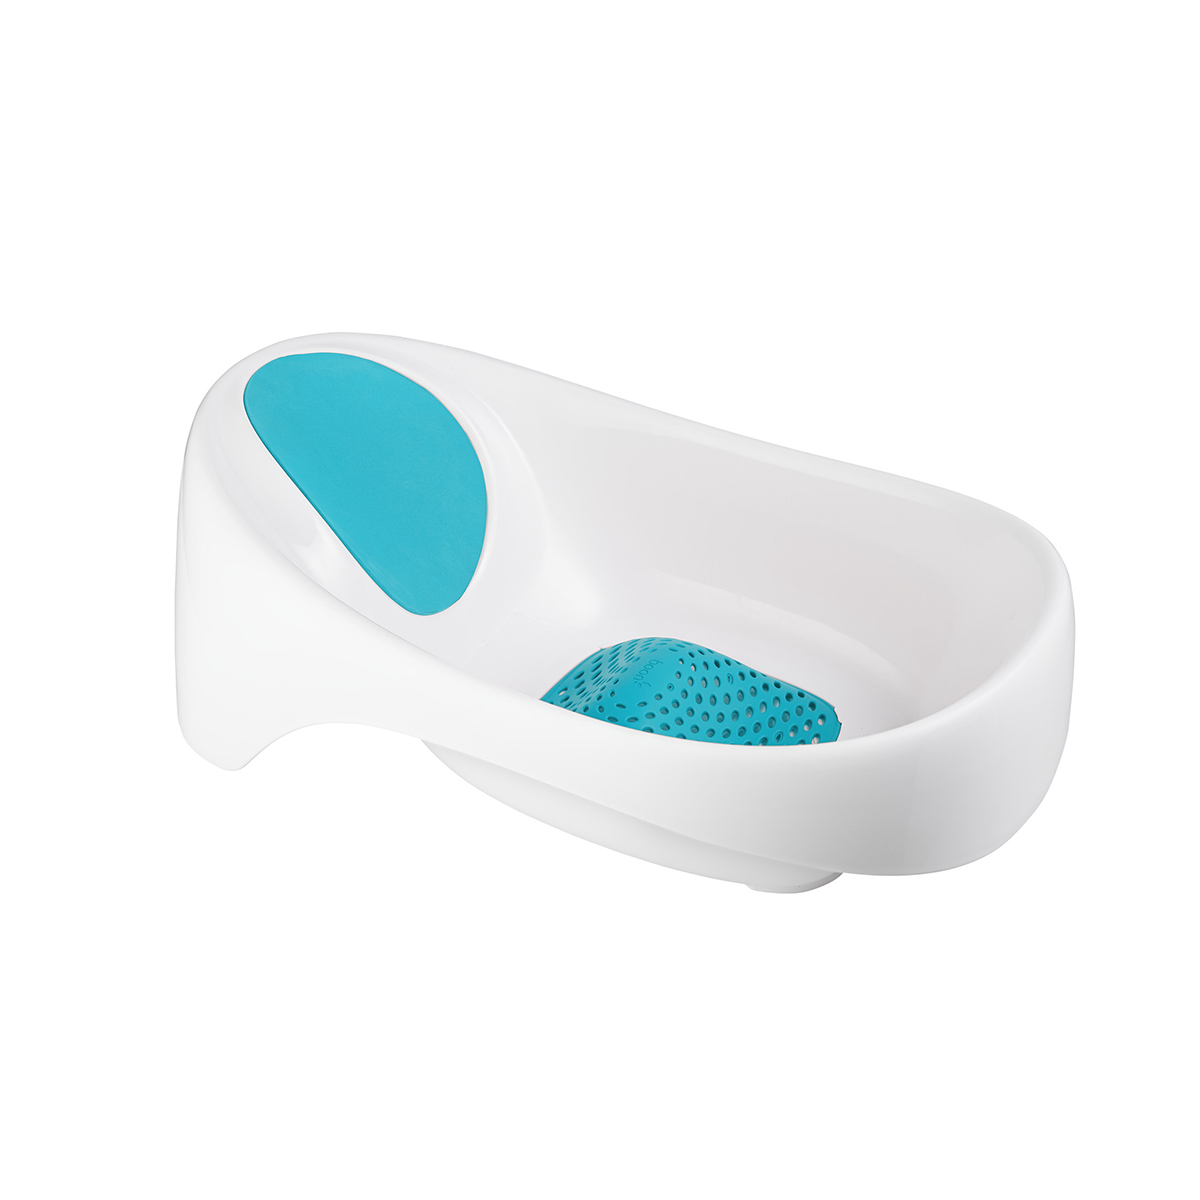 Boon Soak Newborn to Toddler Bathtub